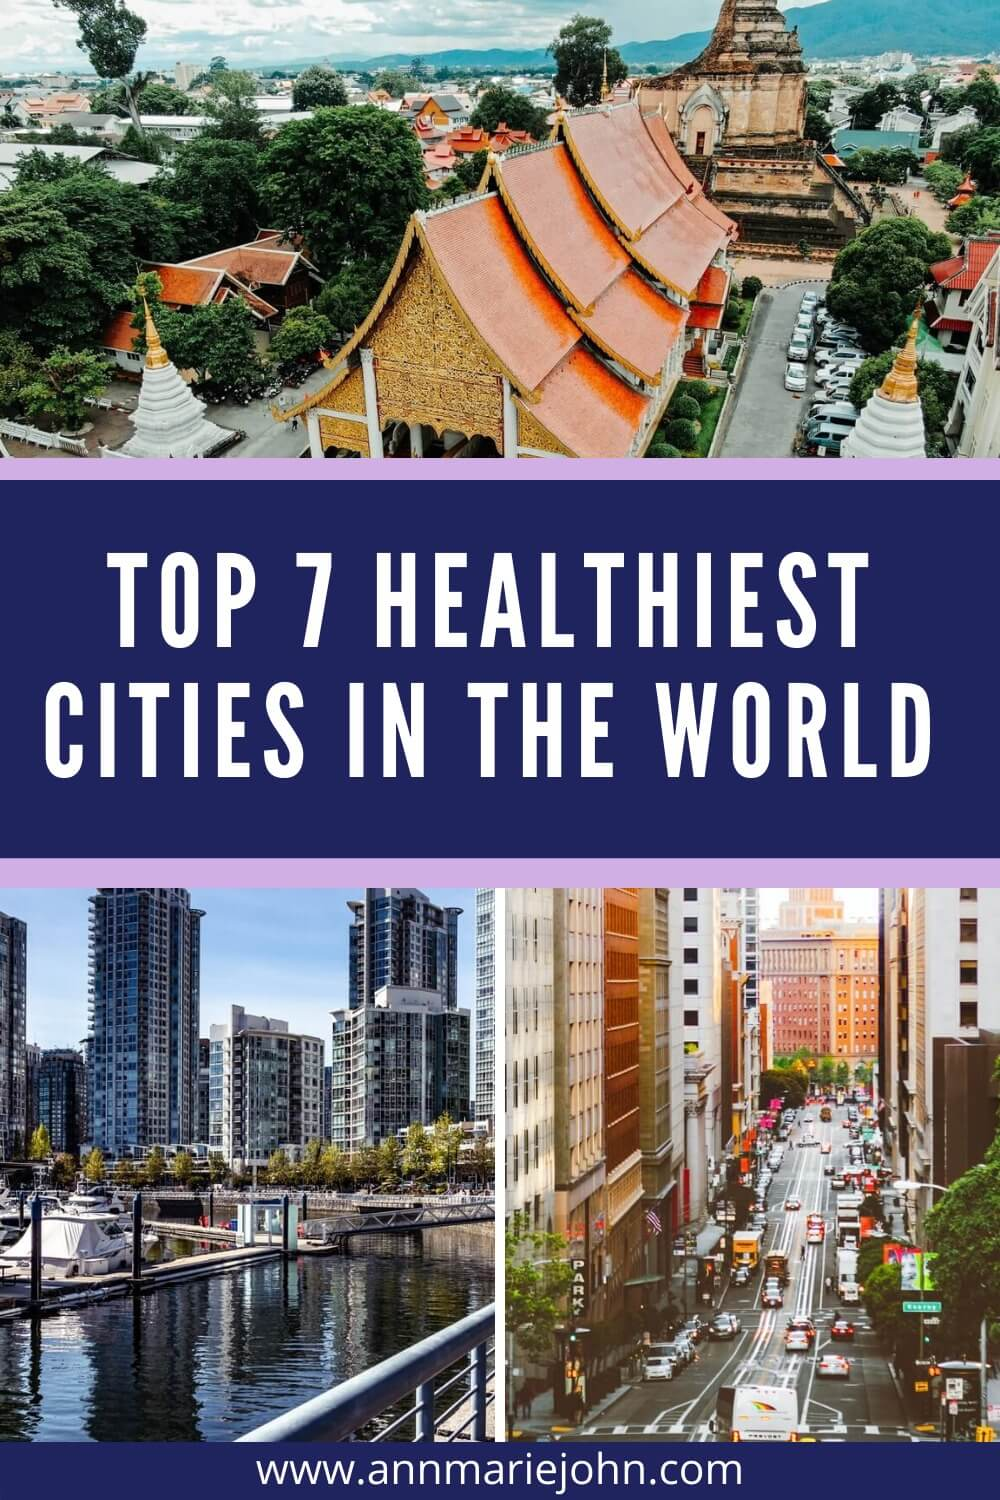 Top 7 Healthiest Cities in the World